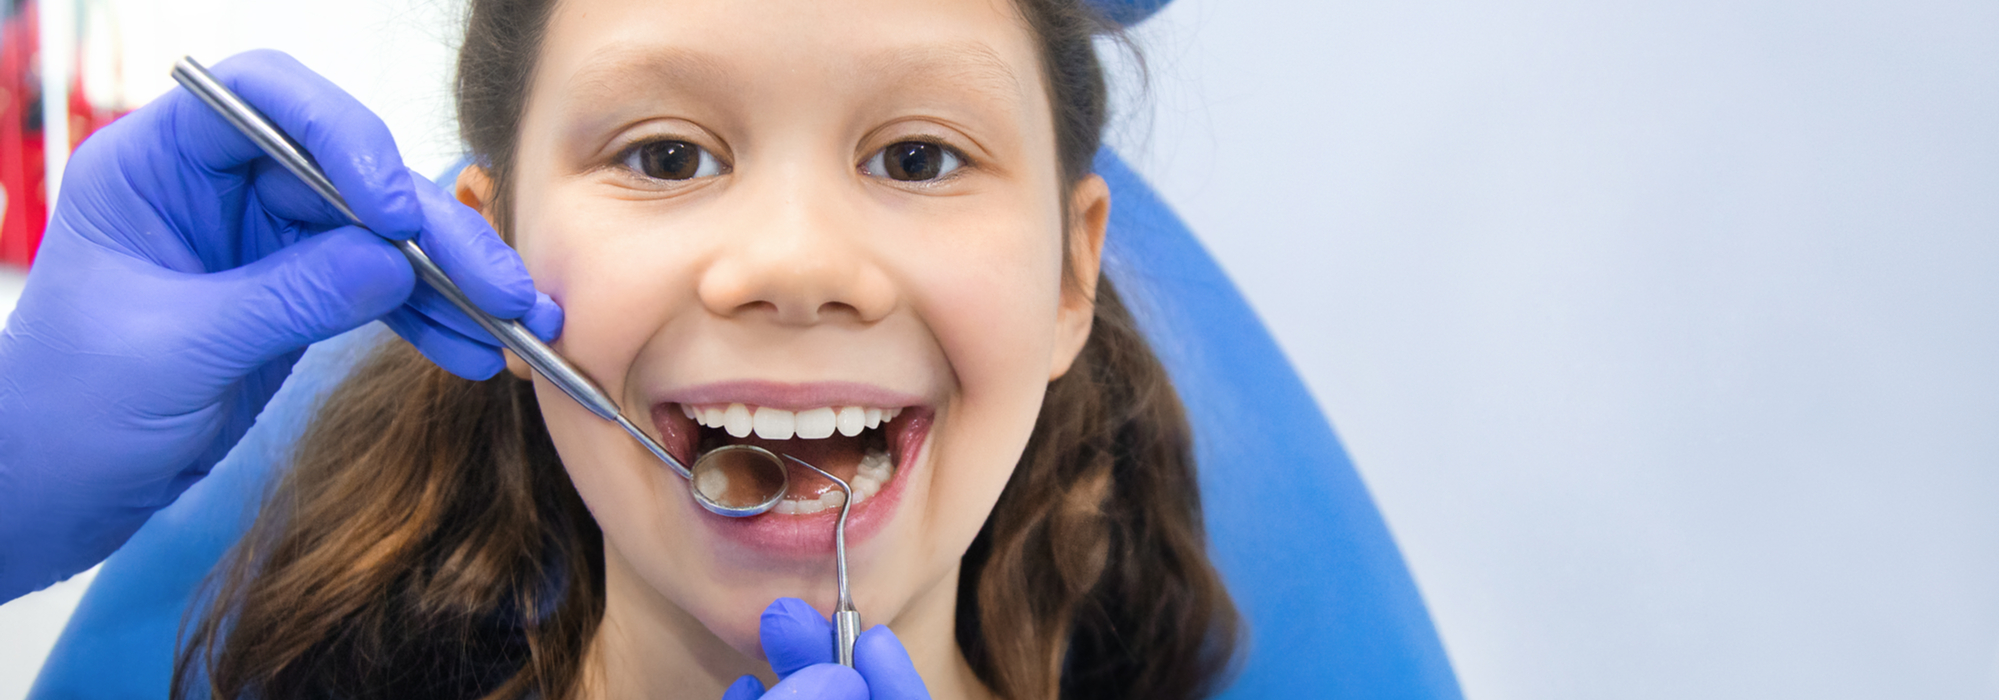 affordable pediatric dentistry options